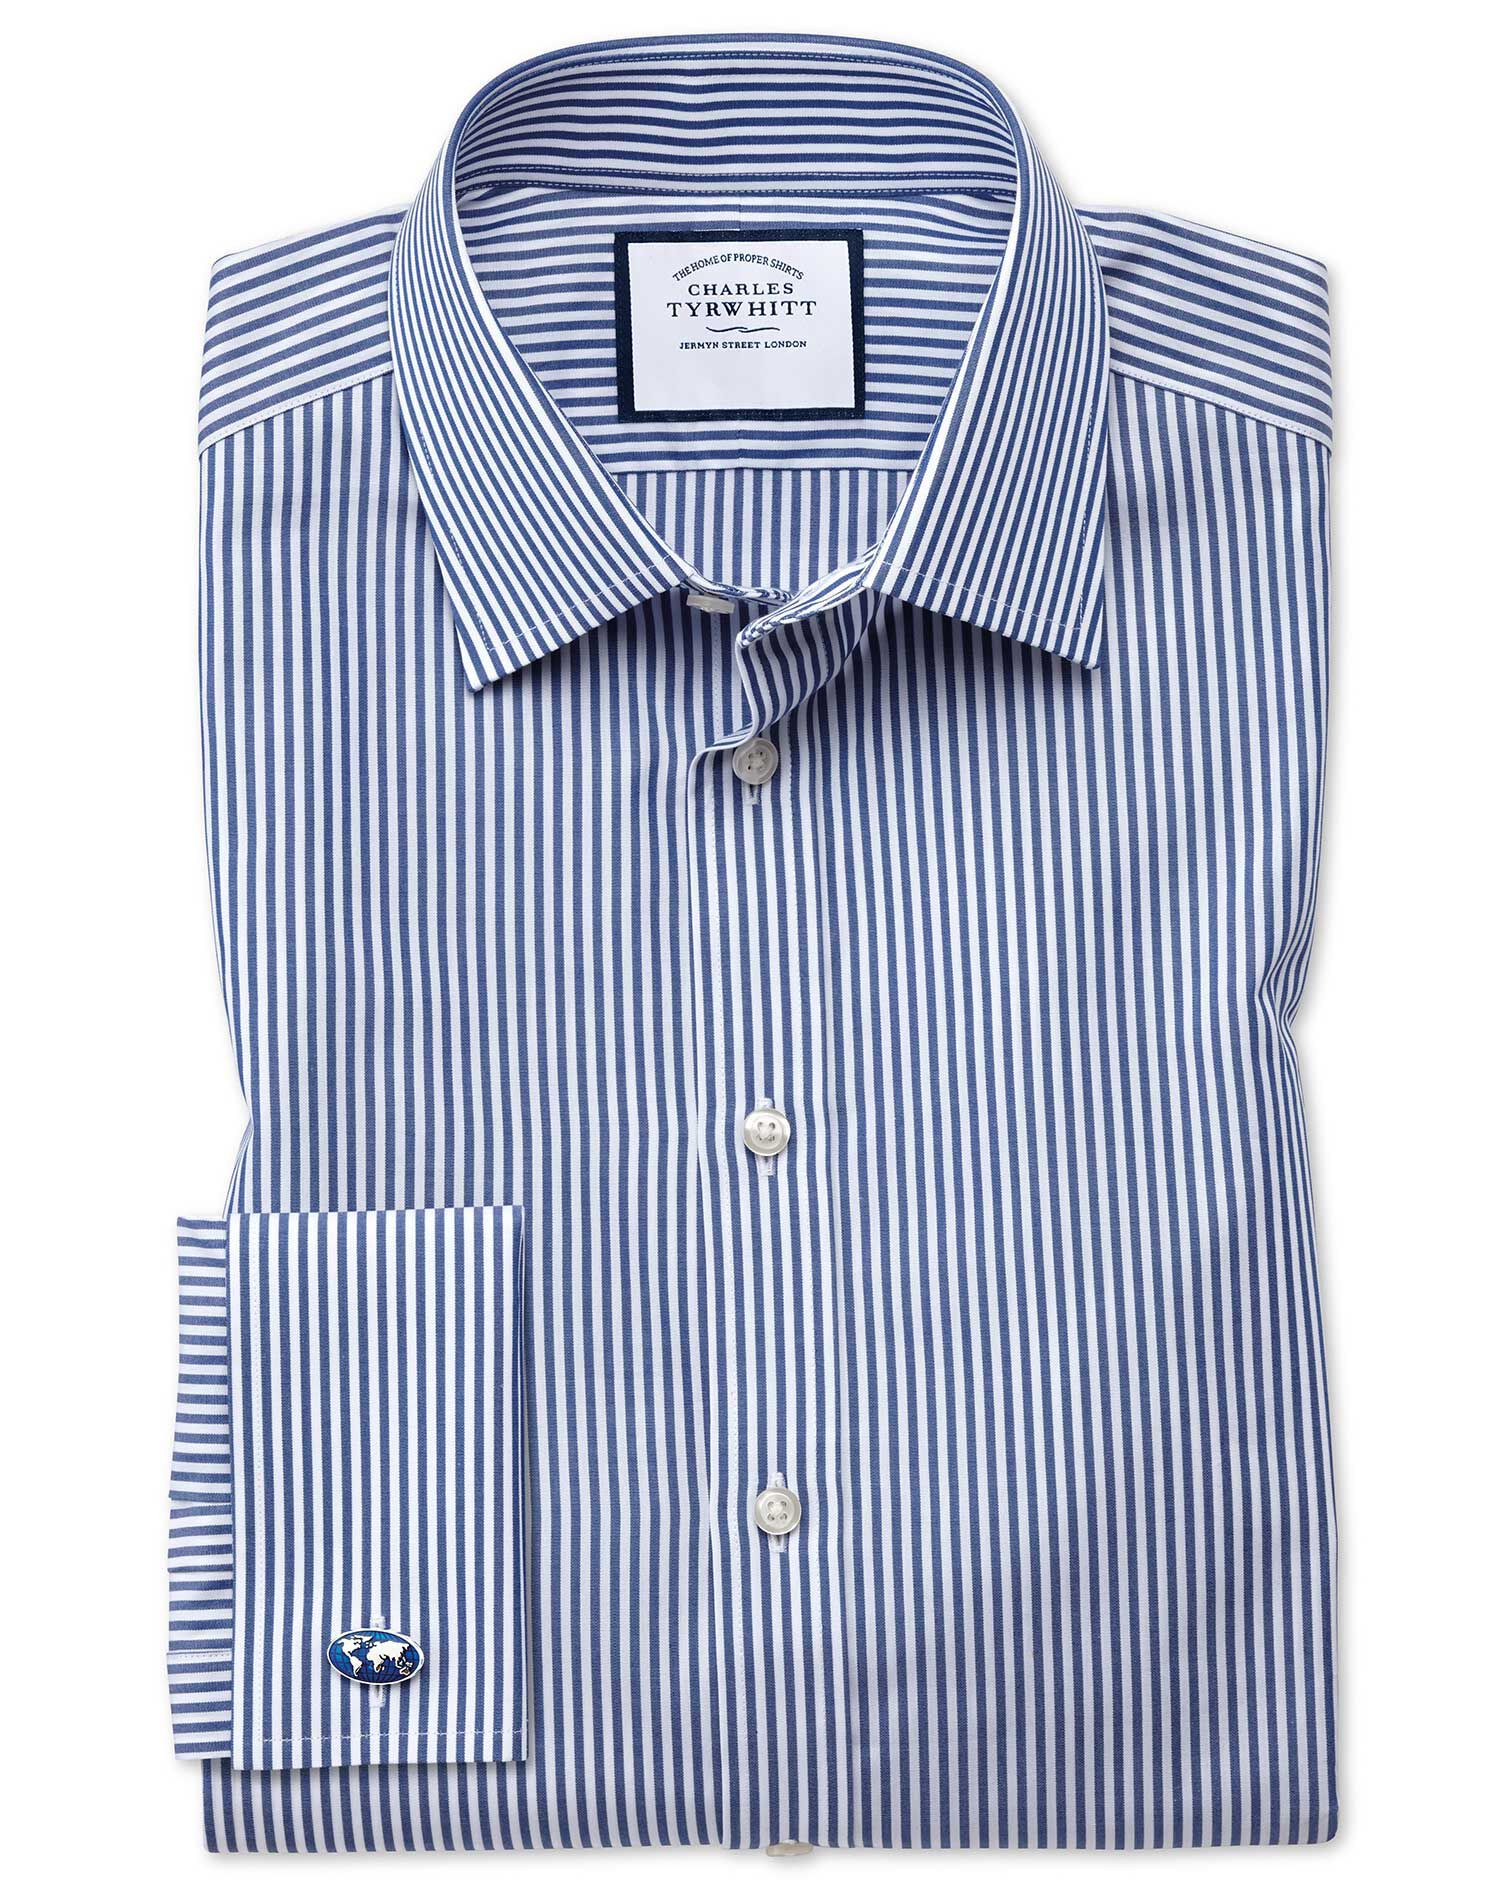 Classic Fit Bengal Stripe Navy Blue Cotton Formal Shirt Double Cuff Size 16.5/36 by Charles Tyrwhitt